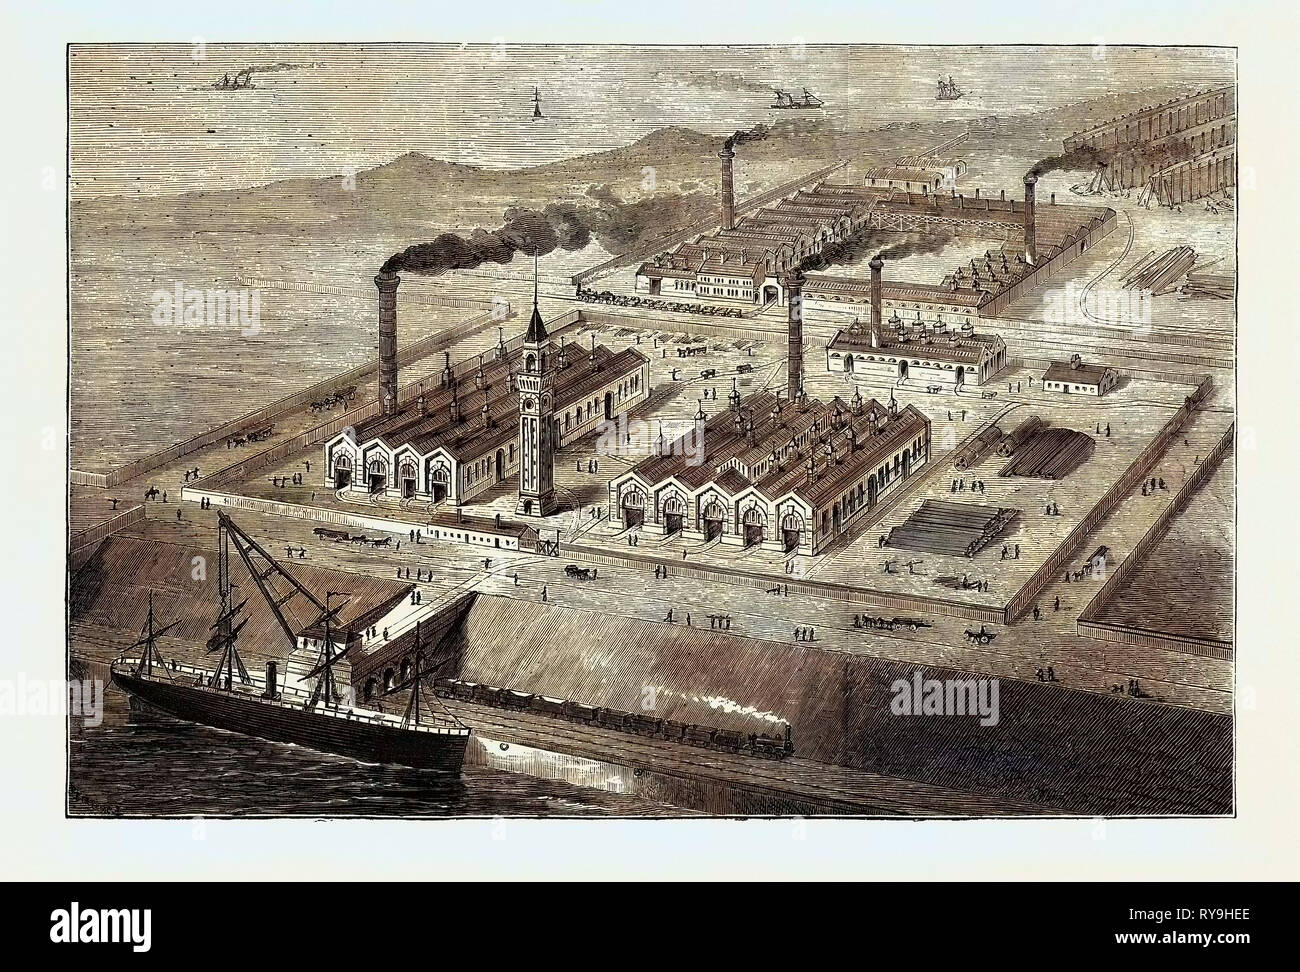 Barrow-in-Furness: Its History and Its Industries, Meeting of the Iron and Steel Institute: The Iron Ship Building Yard, September 12, 1874, UK - Stock Image